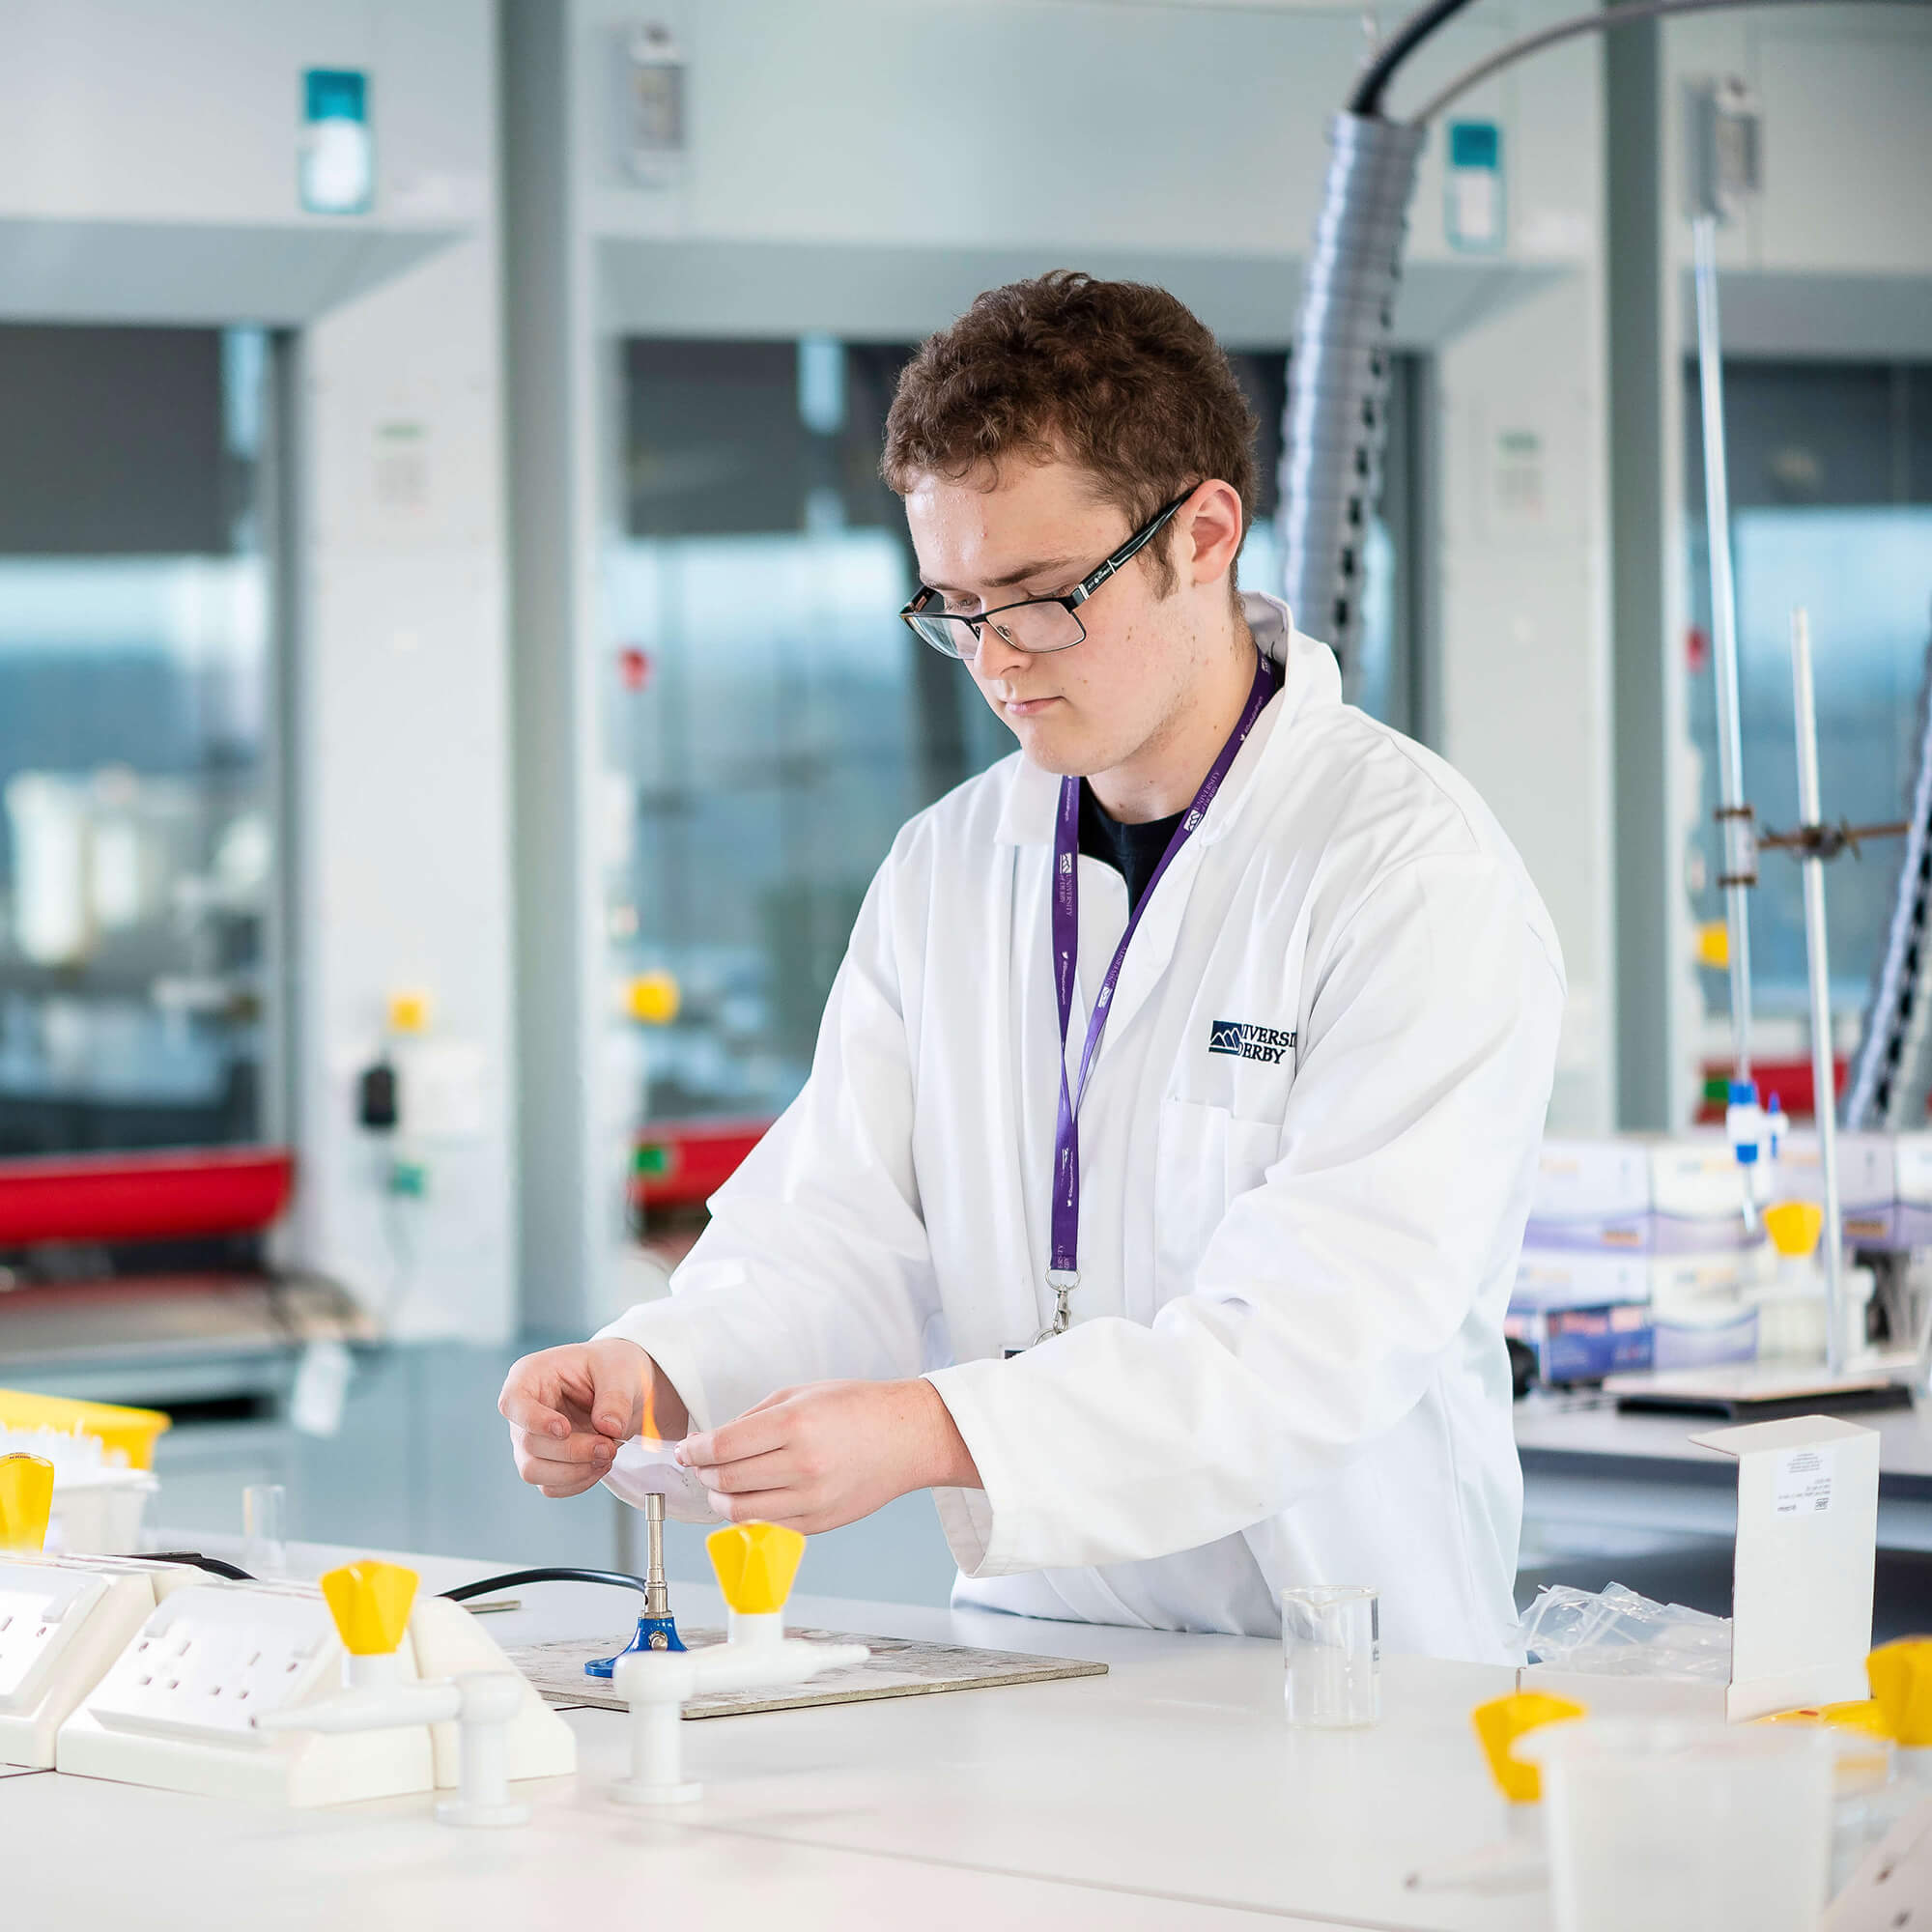 A male student working in the lab.